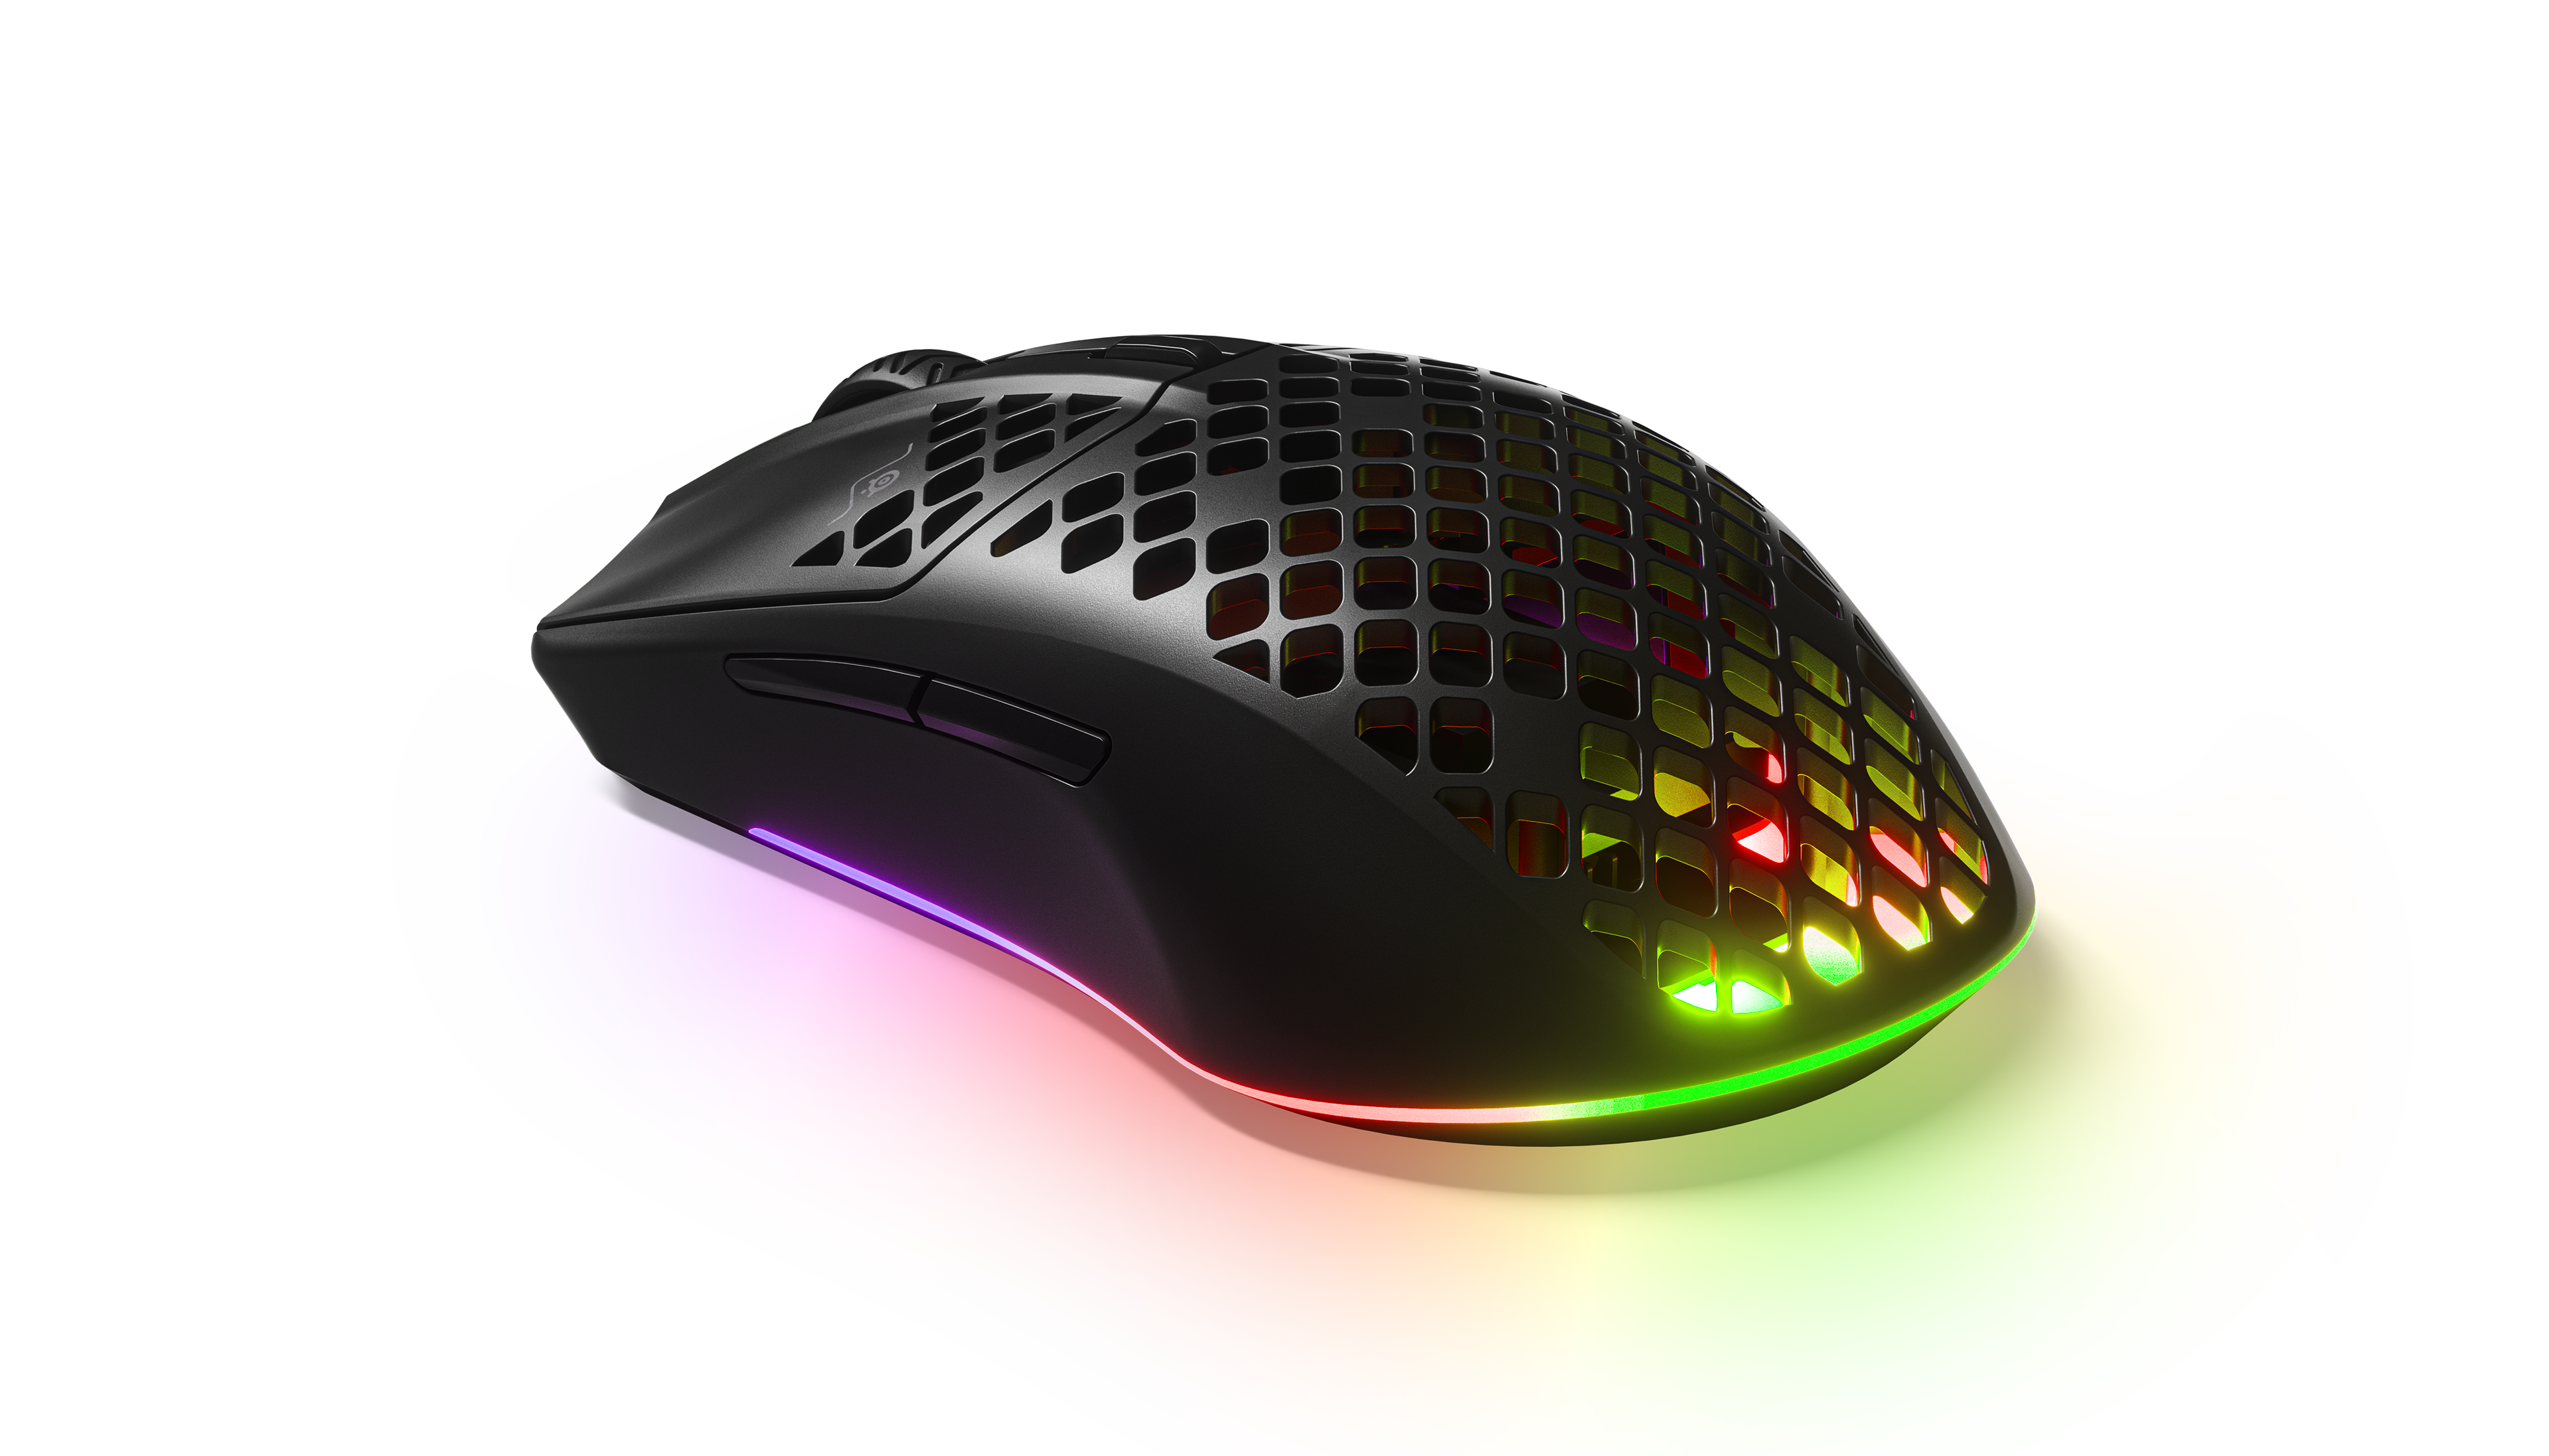 Aerox 3 Wireless mouse with RGB lighting shining through the holes